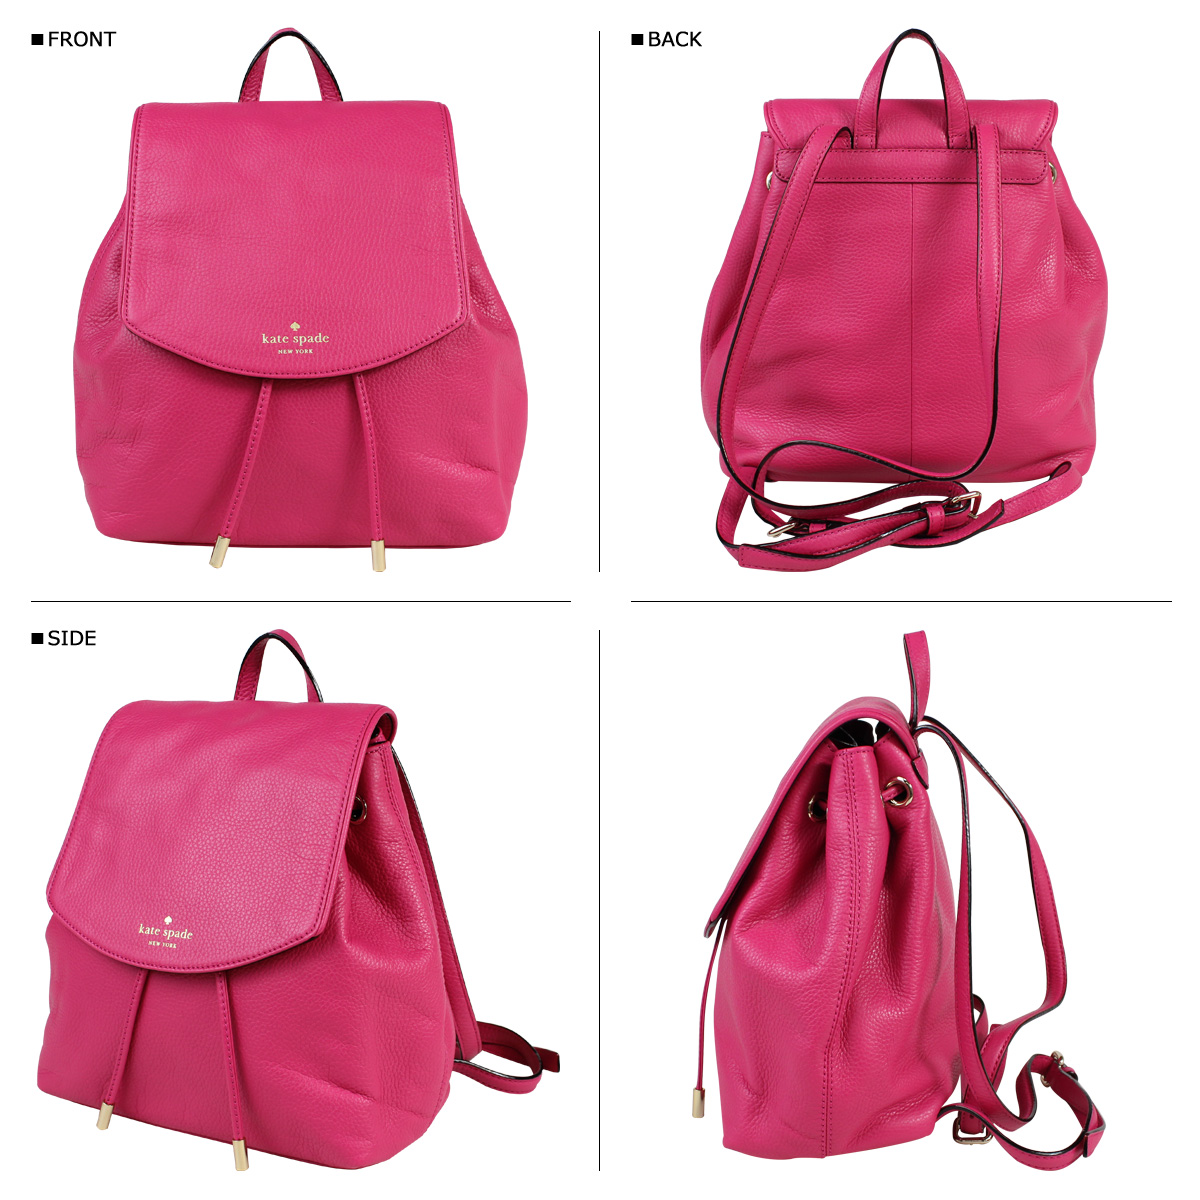 Kate Spade Bag Rucksack Backpack Wkru3939 686 Pink Ladies 8 2 New In Stock